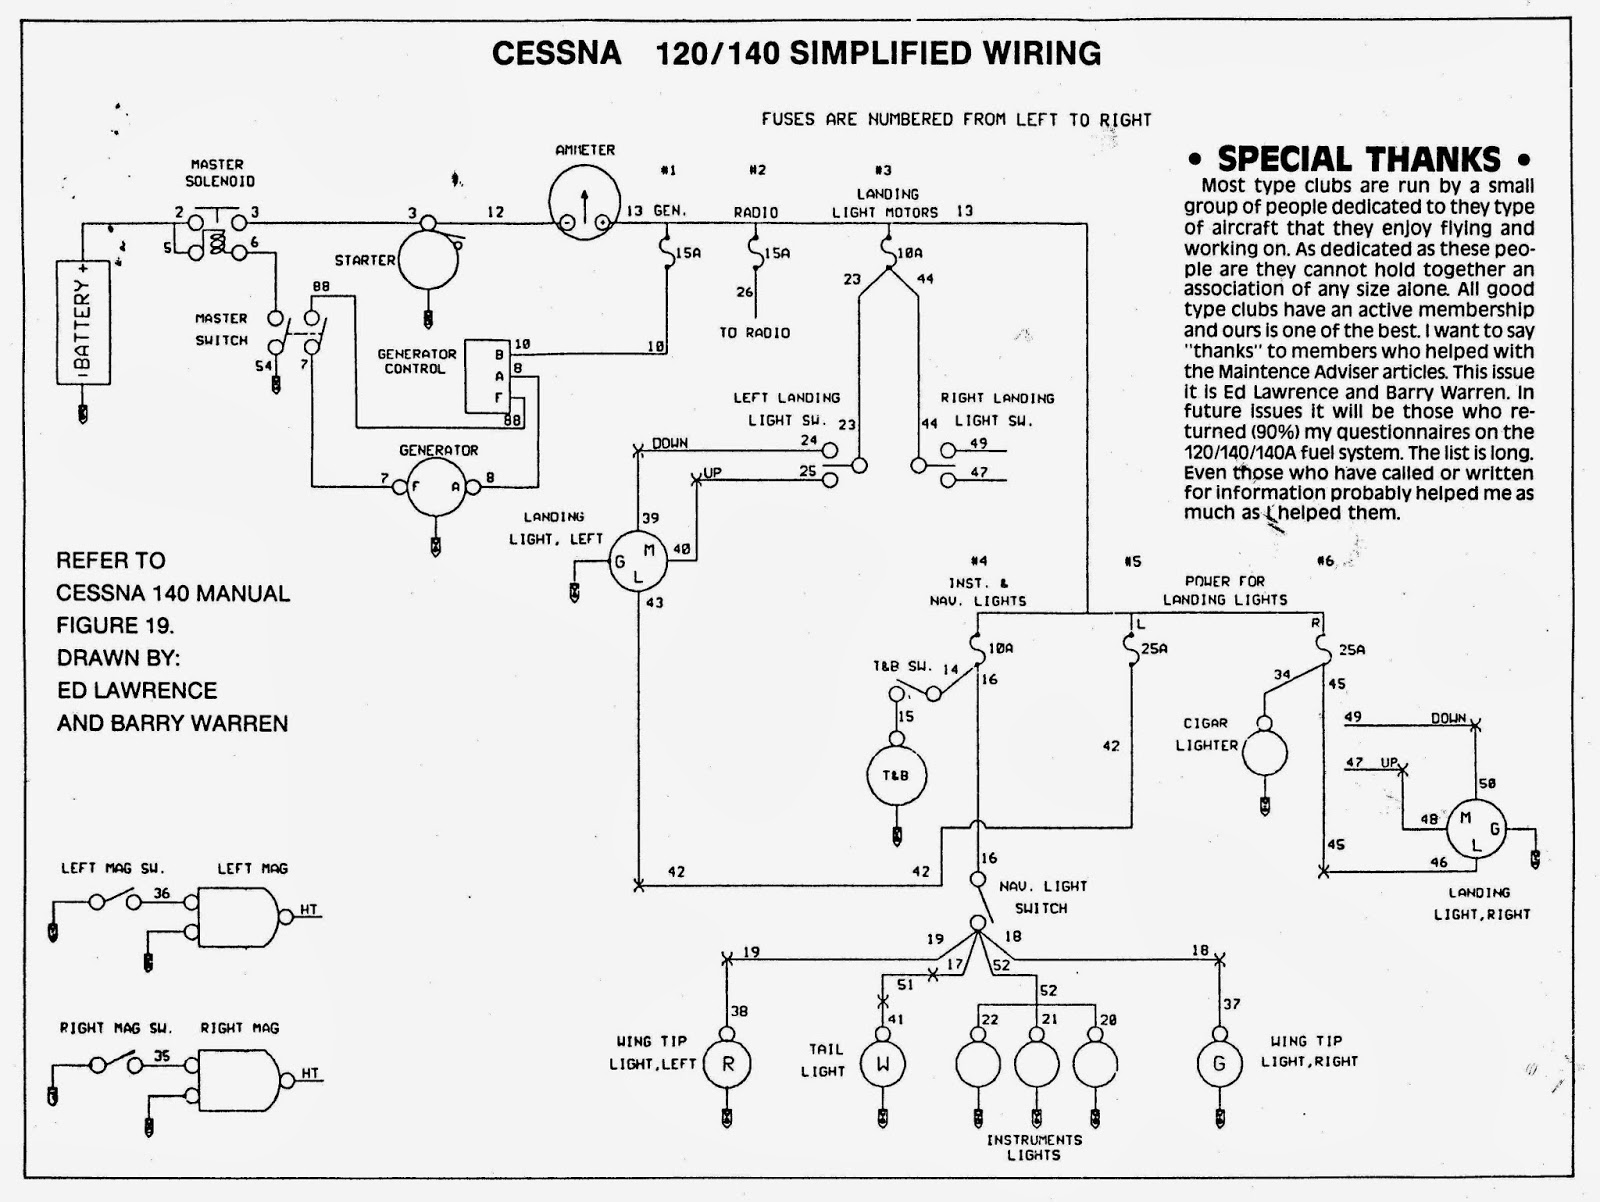 hight resolution of cessna 172 audio jacks wiring diagram wiring diagram cessna 172 cockpit layout wiring diagrams for aircraft